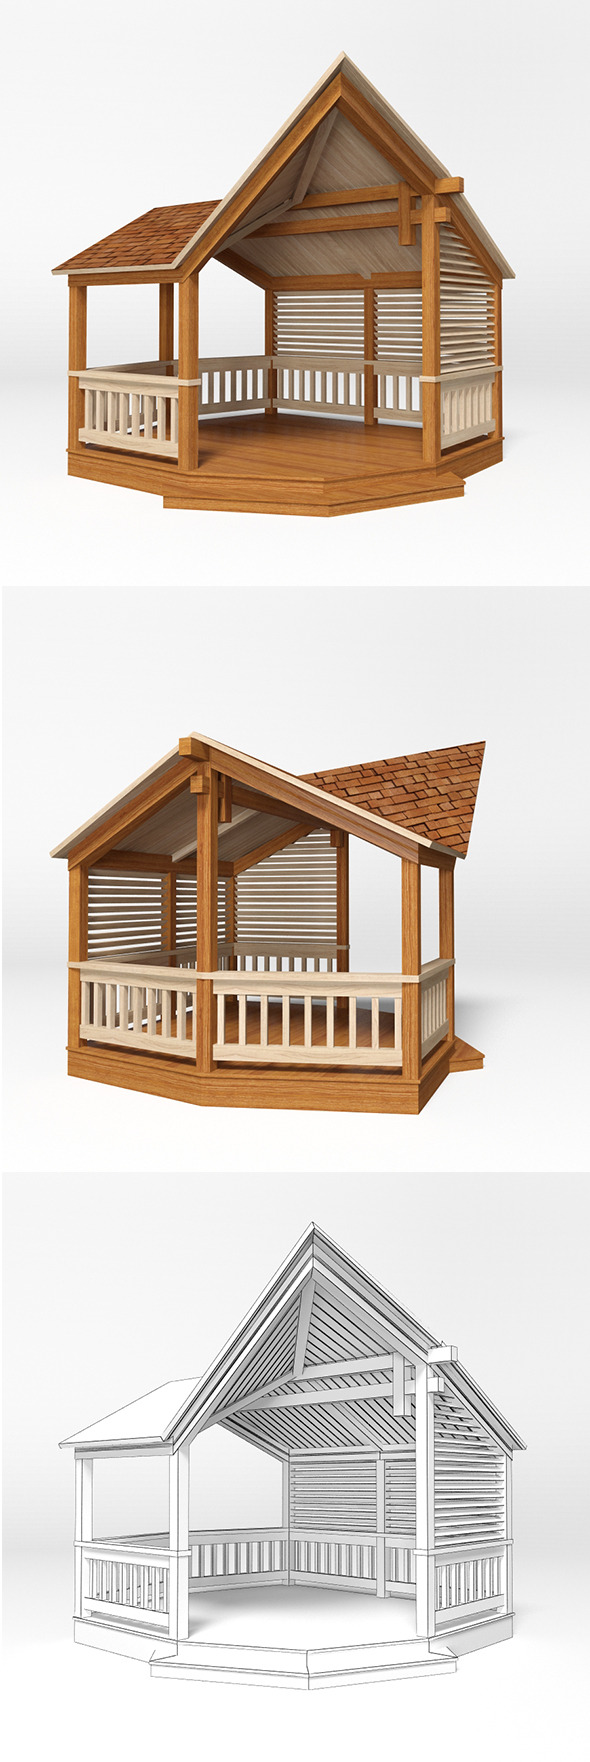 Gazebo 13 - 3DOcean Item for Sale